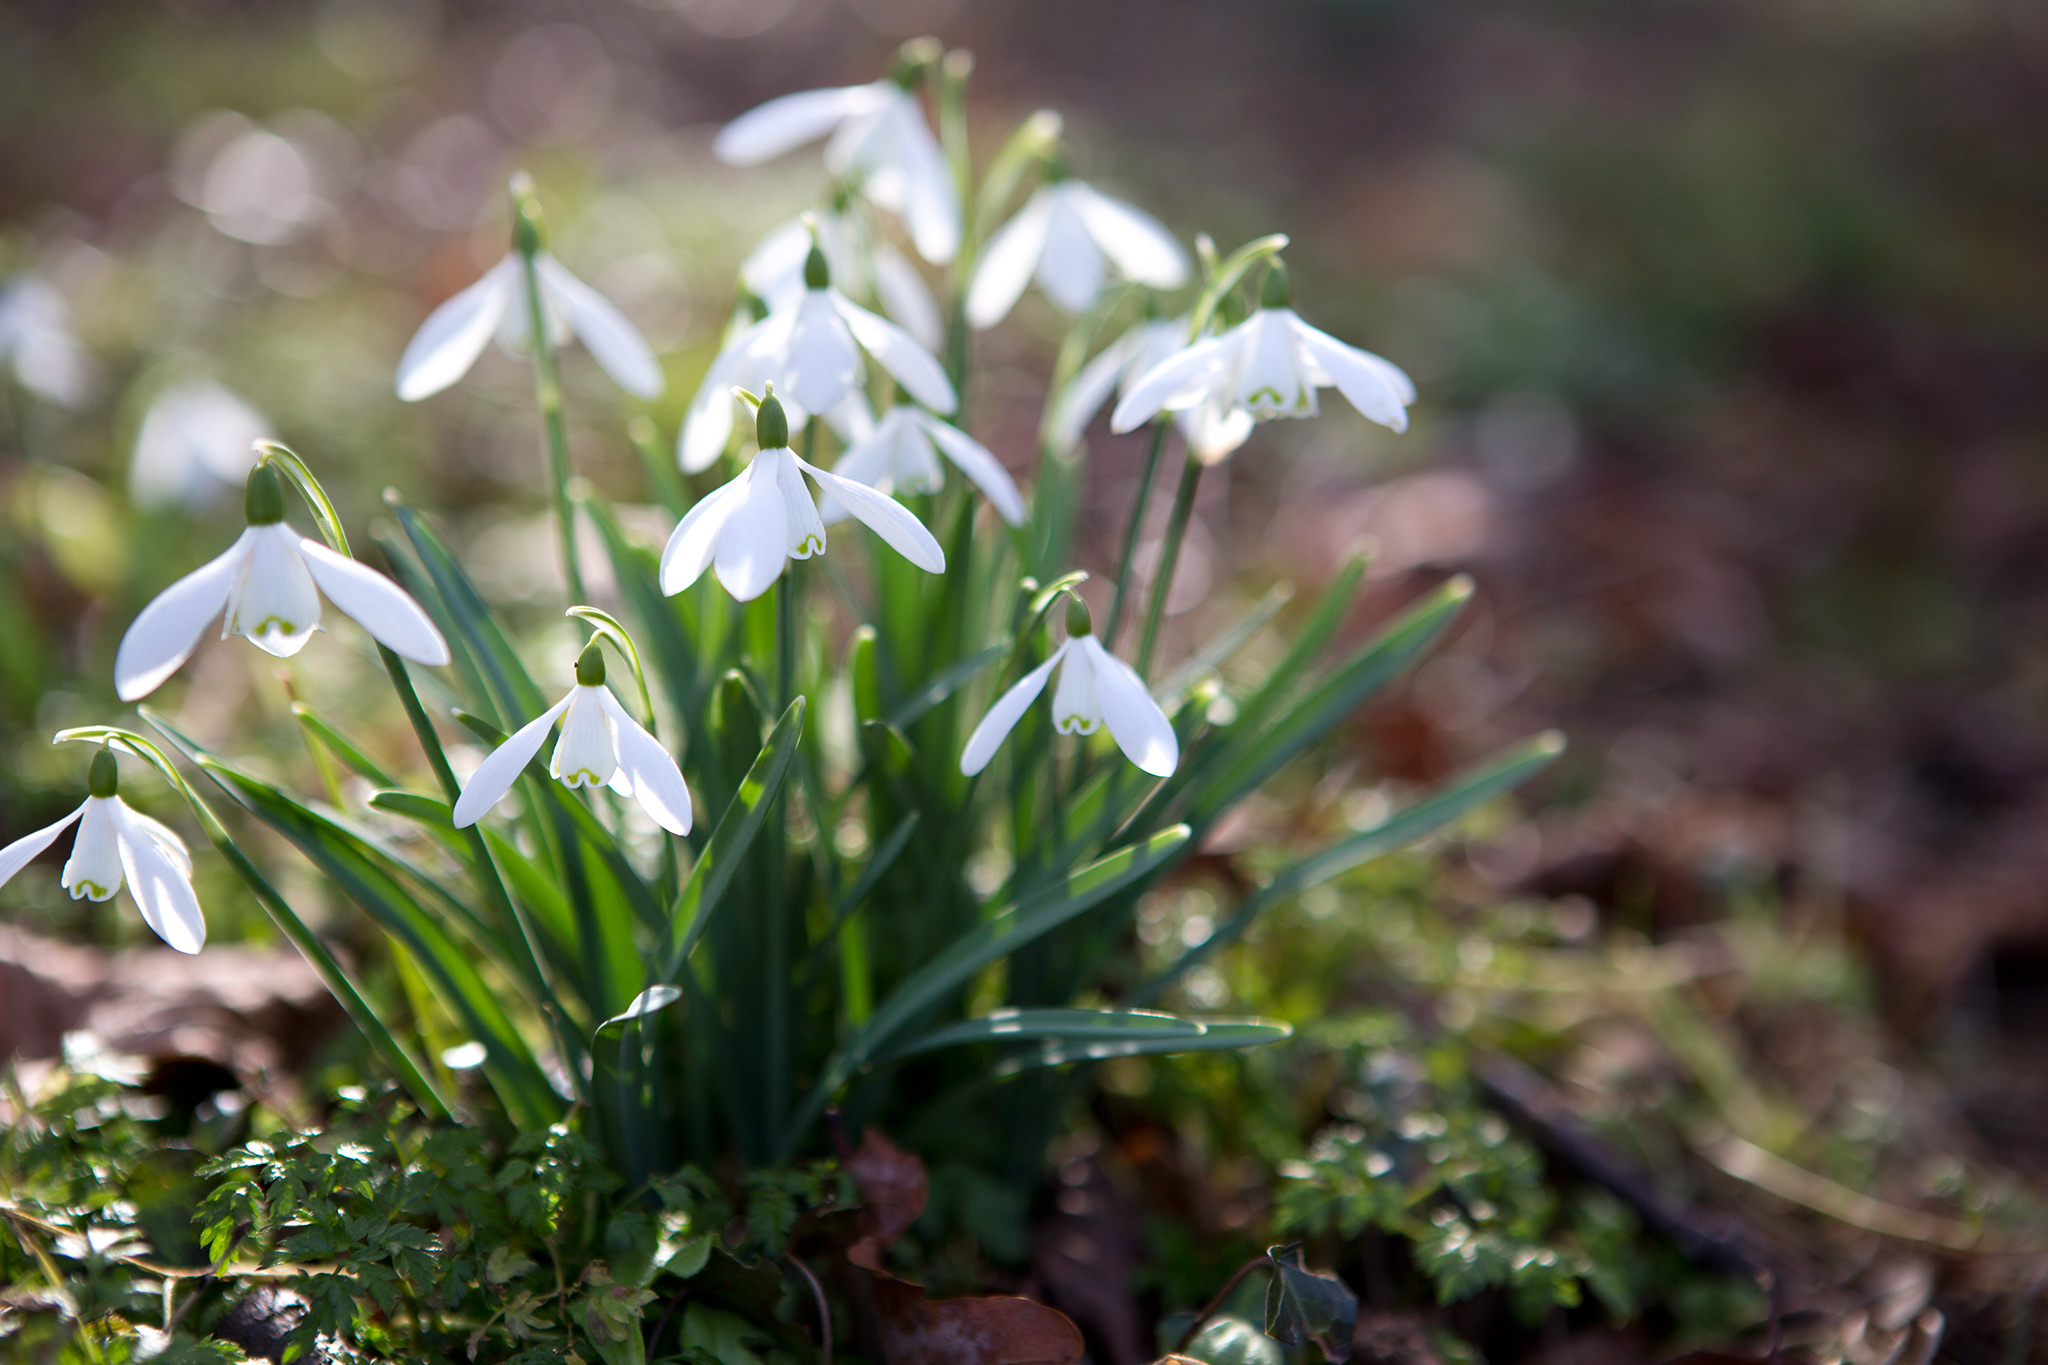 Planting snowdrops 'in the green'